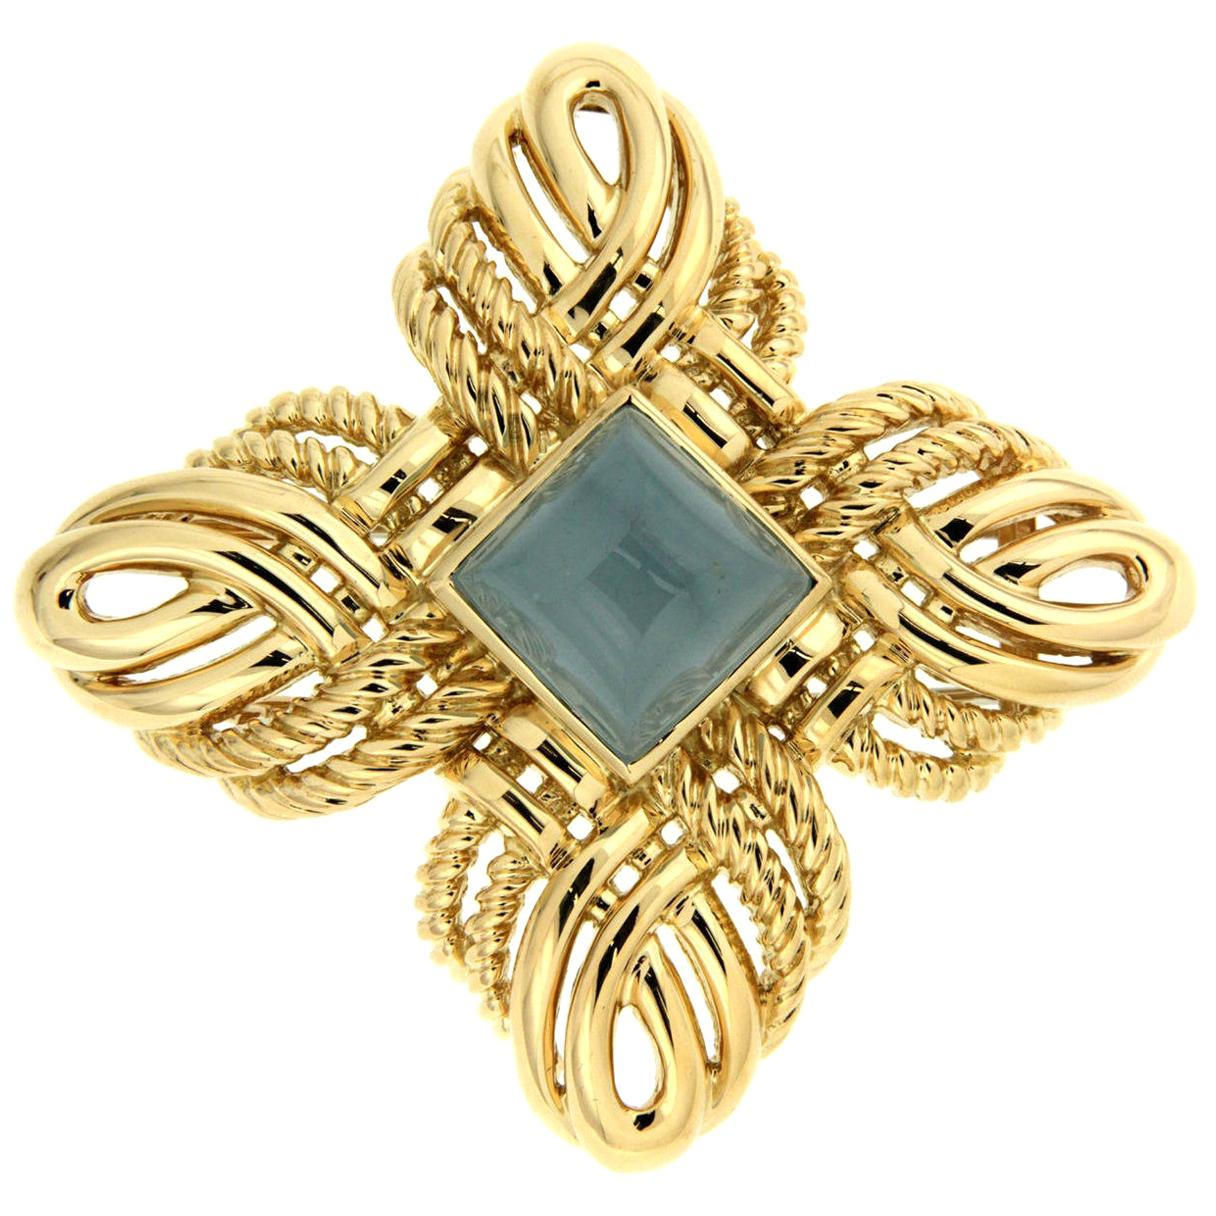 Valentin Magro Gold Woven Twisted Wire Aquamarine Brooch